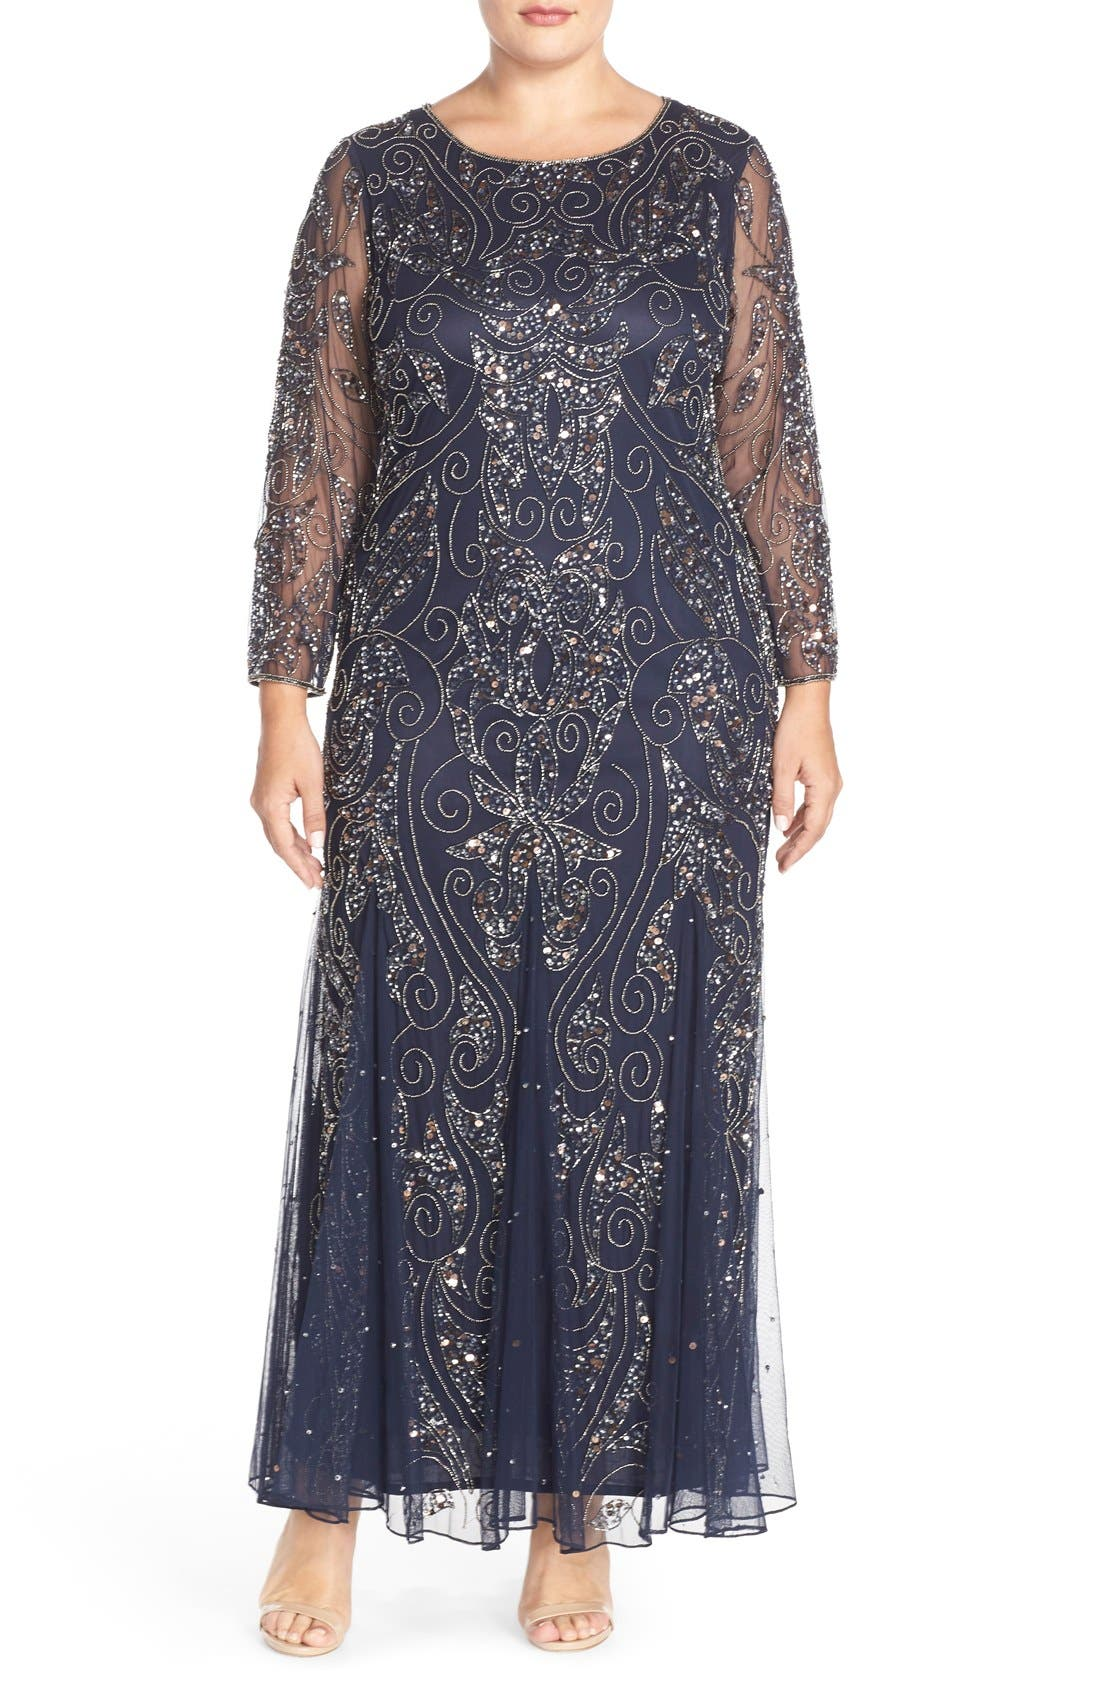 1920s Plus Size Flapper Dresses, Gatsby Dresses, Flapper Costumes Plus Size Womens Pisarro Nights Embellished Three Quarter Sleeve Gown Size 14W - Blue $238.00 AT vintagedancer.com